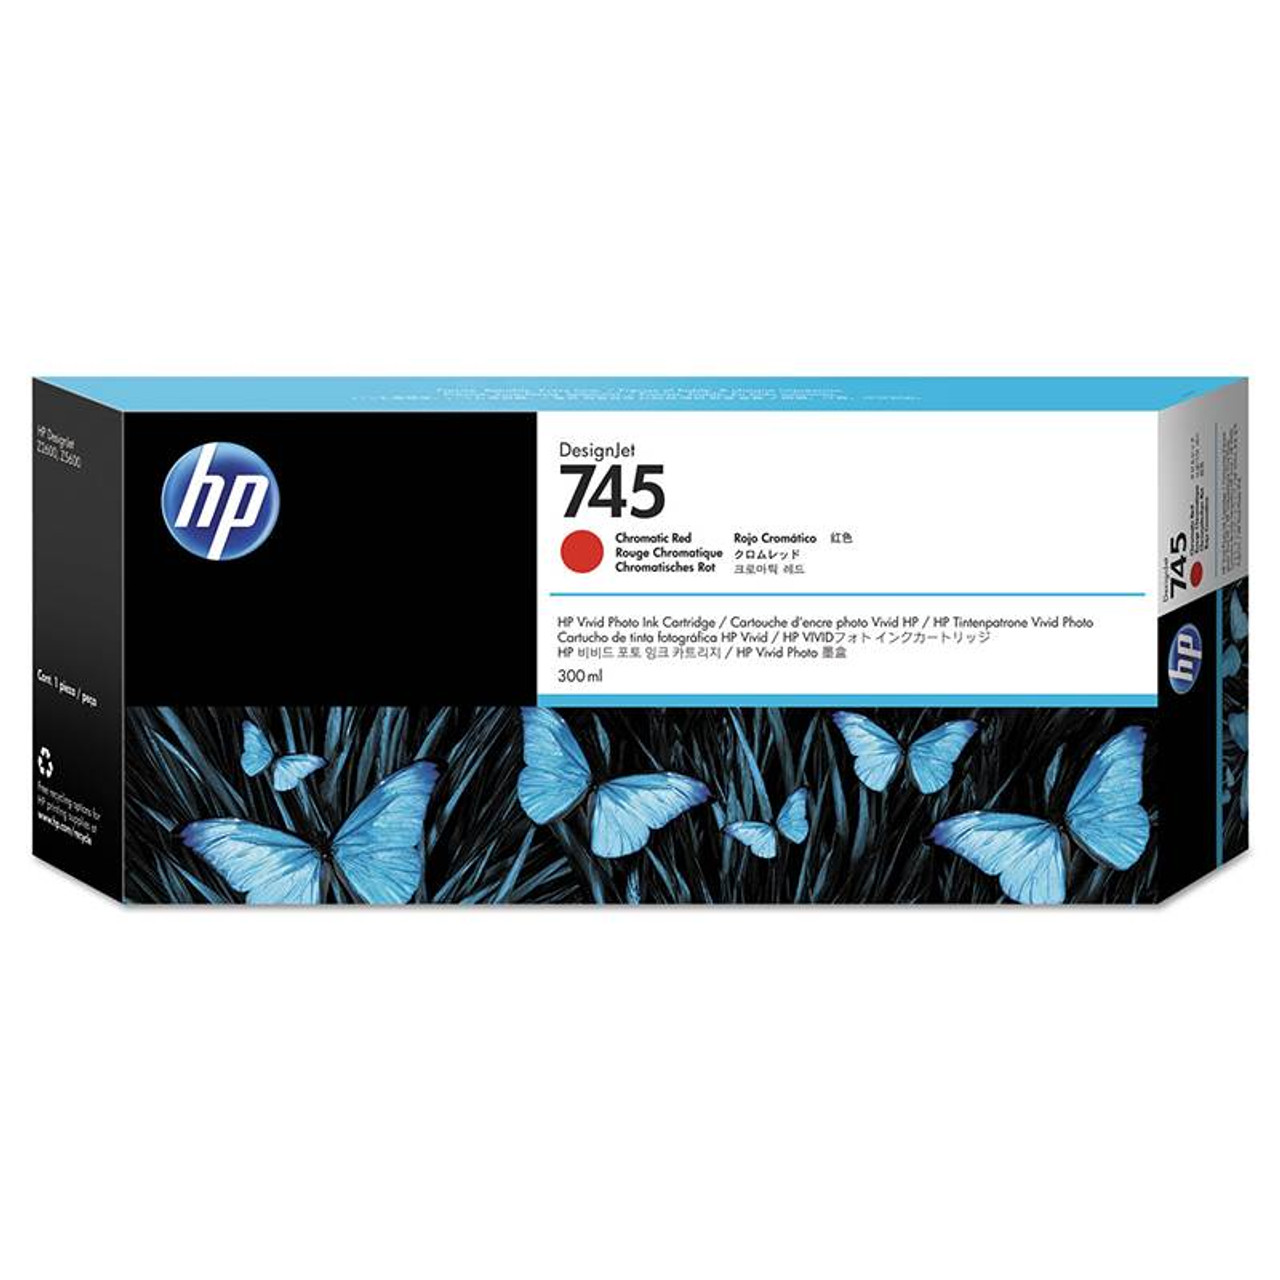 Image for HP745 300ML Ink Cartridge - Chromatic Red (F9K06A) CX Computer Superstore